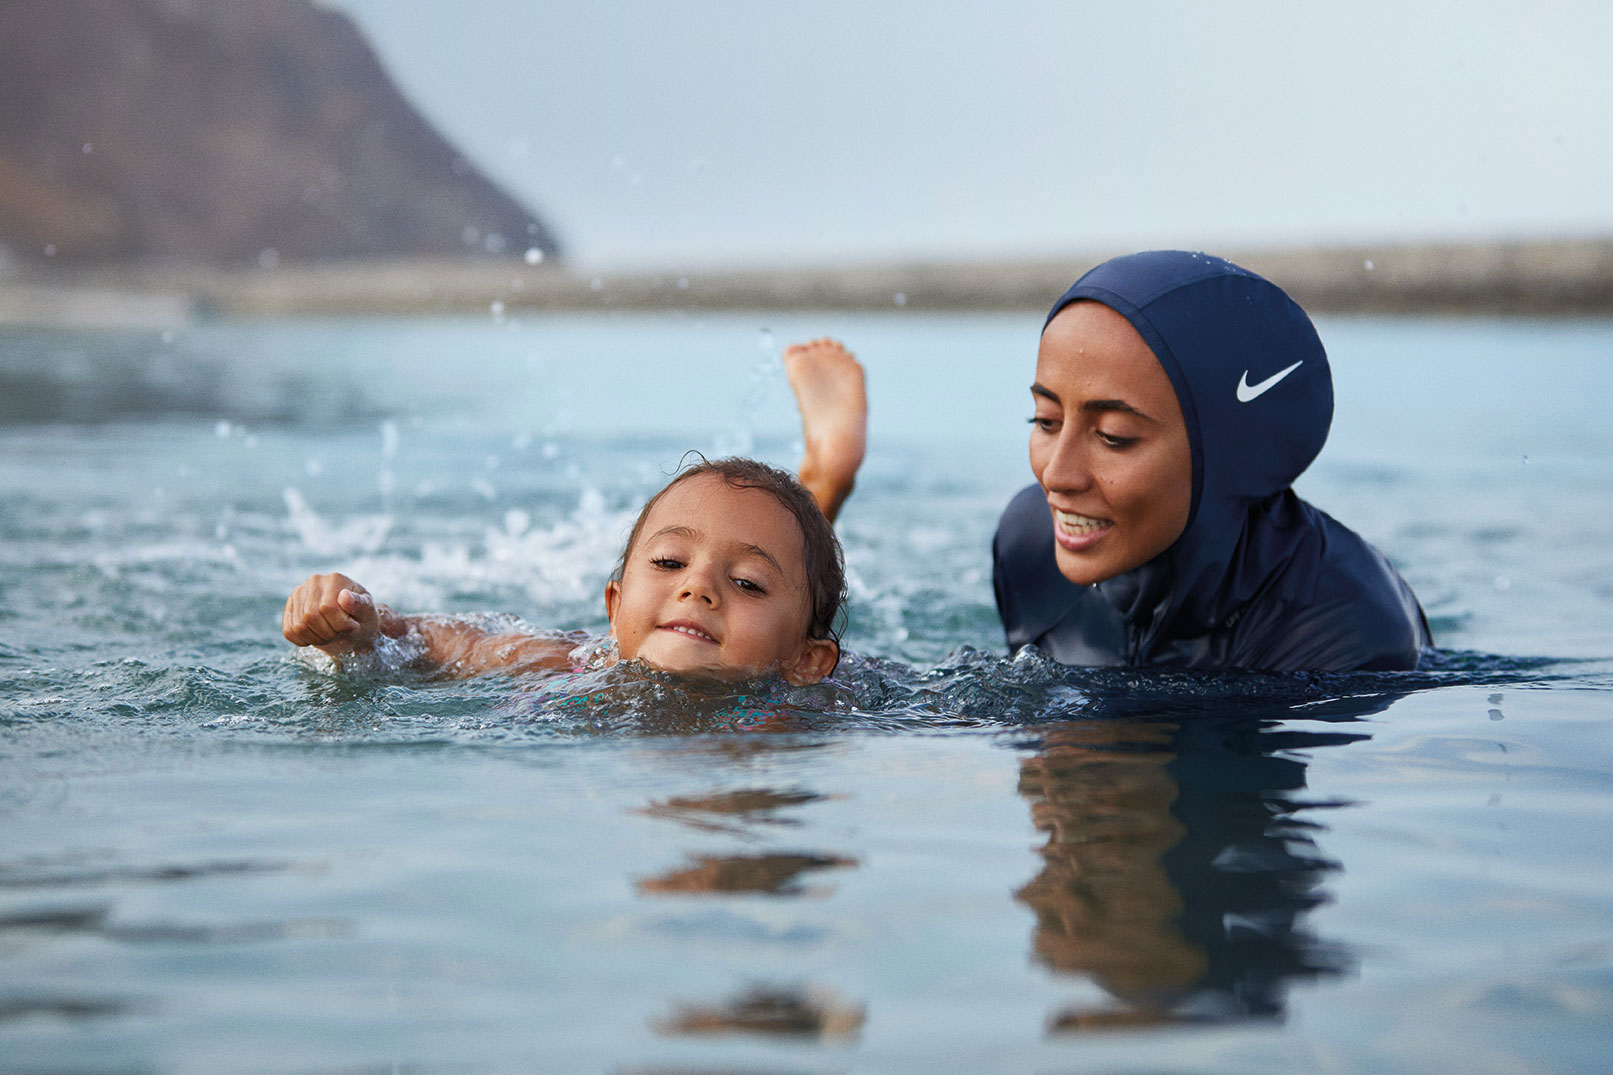 Nike's rousing ad aims to inspire Middle Eastern female athletes